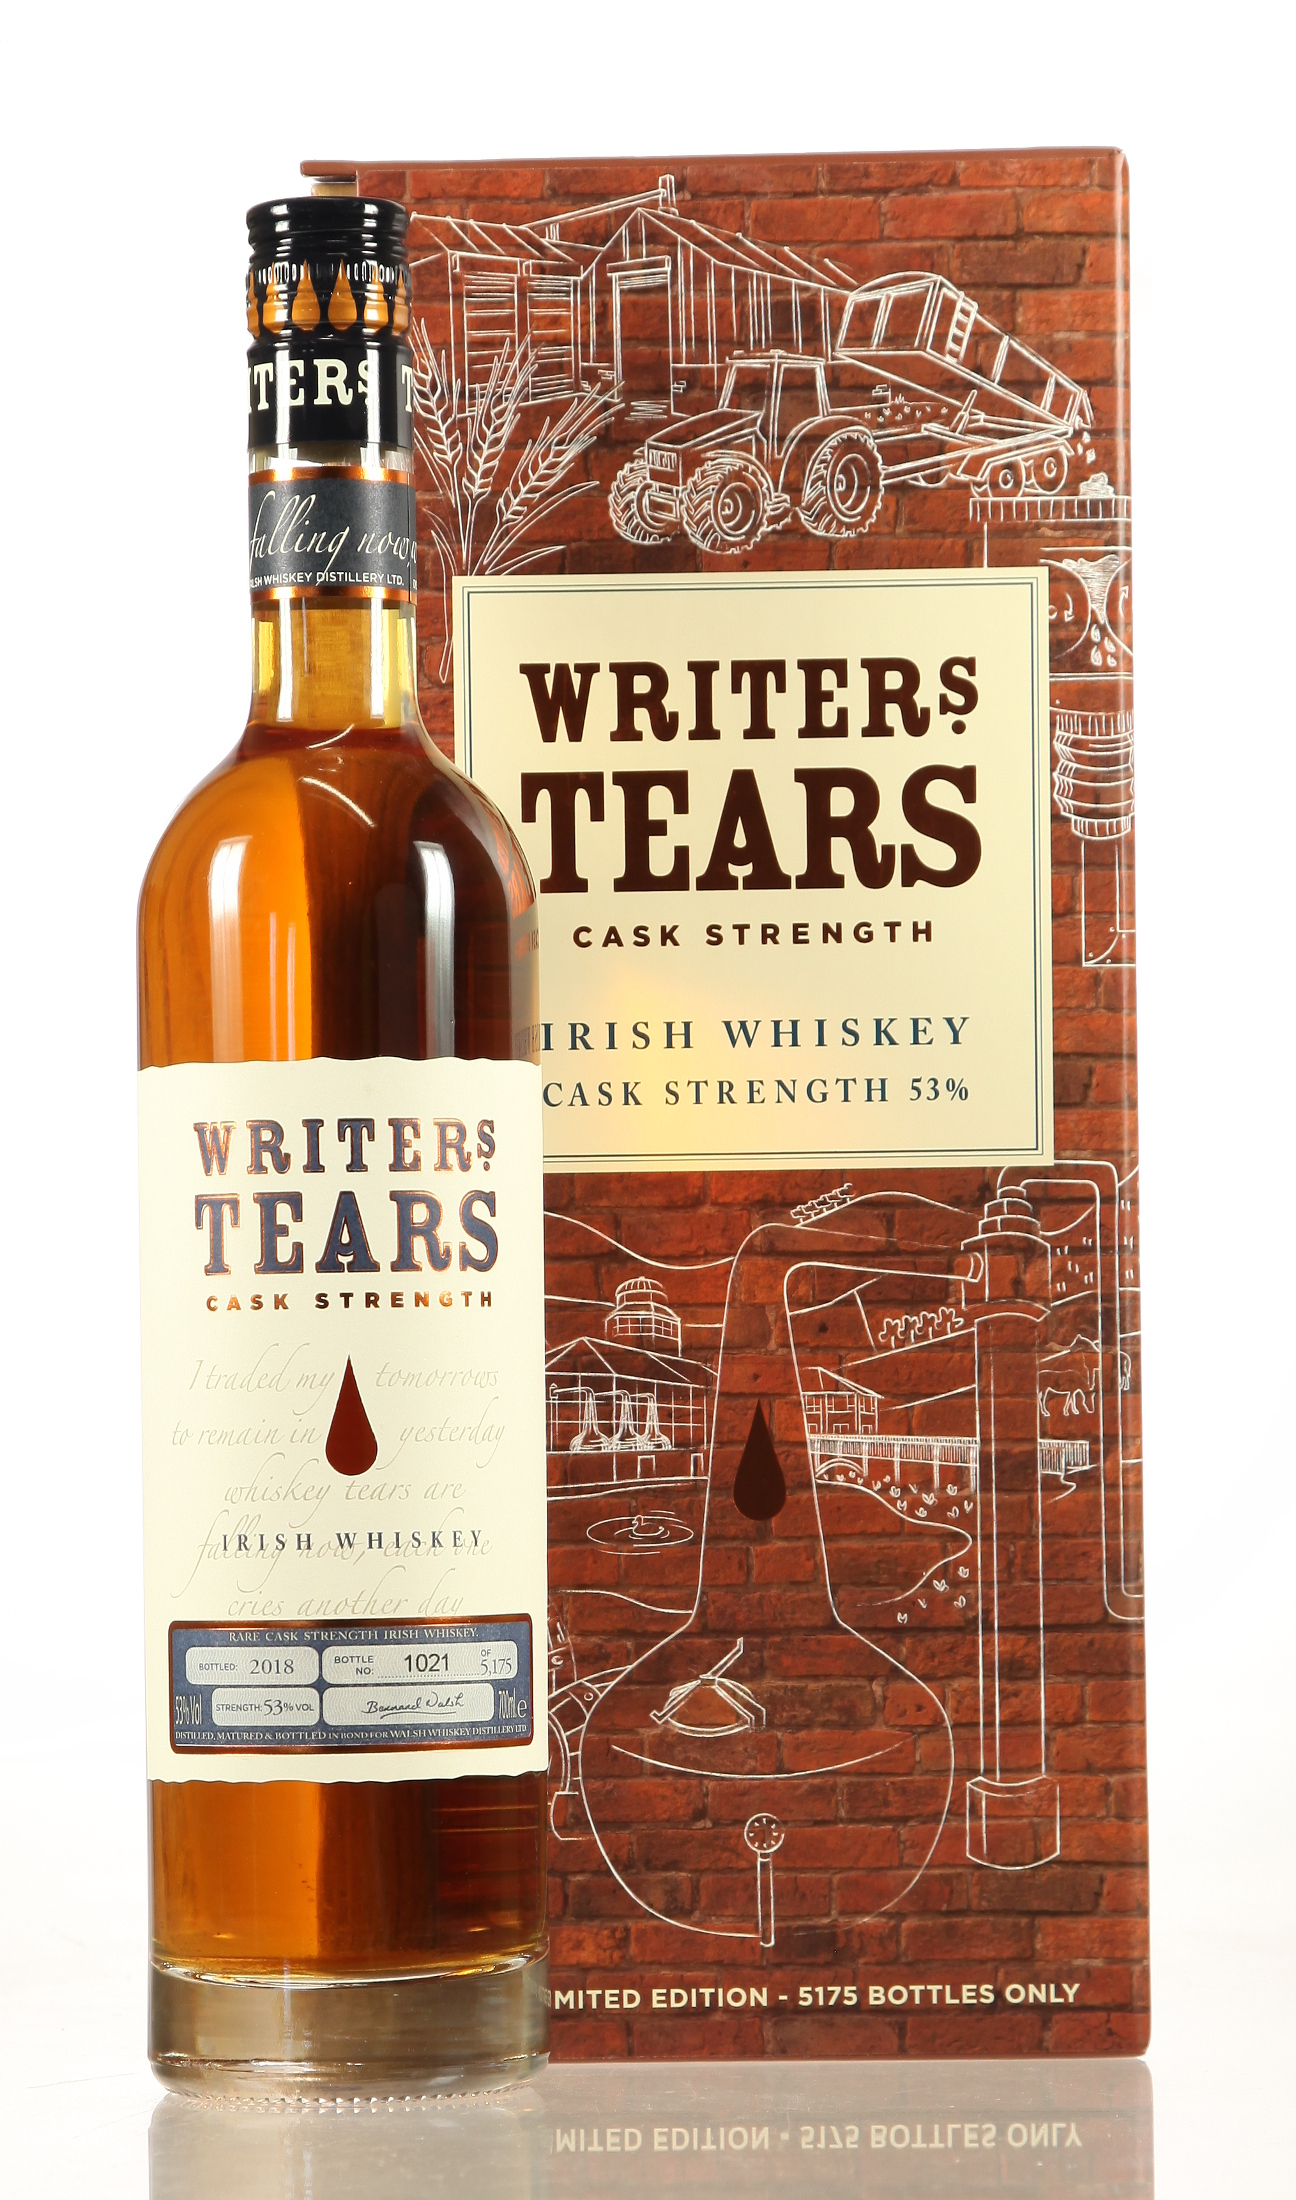 Writers Tears Cask Strength